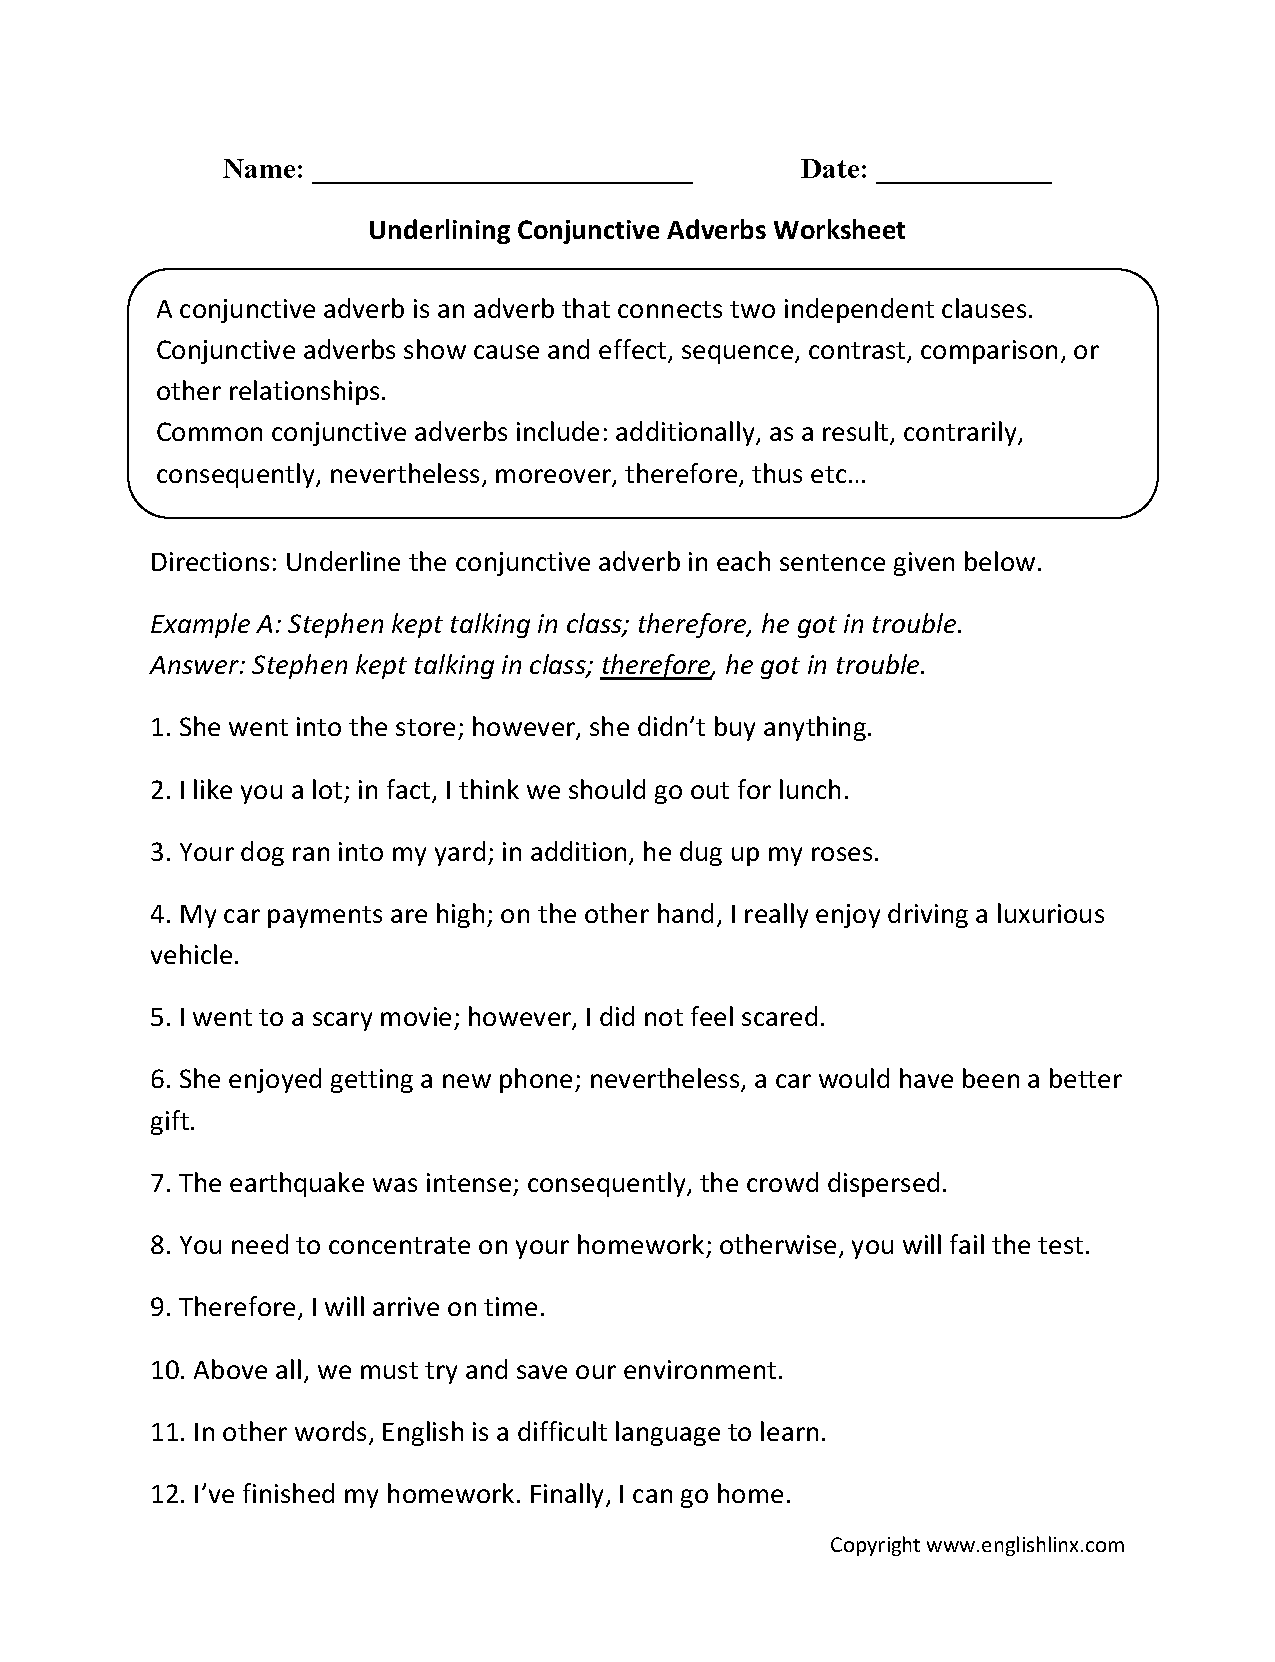 Weirdmailus  Sweet Englishlinxcom  Conjunctions Worksheets With Handsome Worksheet With Awesome Distributive Property Worksheet Th Grade Also Free Word Problem Worksheets In Addition Free Math Worksheets For Kids And Adhd Worksheets For Kids As Well As Soft School Worksheets Additionally Conjunctions Worksheet Th Grade From Englishlinxcom With Weirdmailus  Handsome Englishlinxcom  Conjunctions Worksheets With Awesome Worksheet And Sweet Distributive Property Worksheet Th Grade Also Free Word Problem Worksheets In Addition Free Math Worksheets For Kids From Englishlinxcom